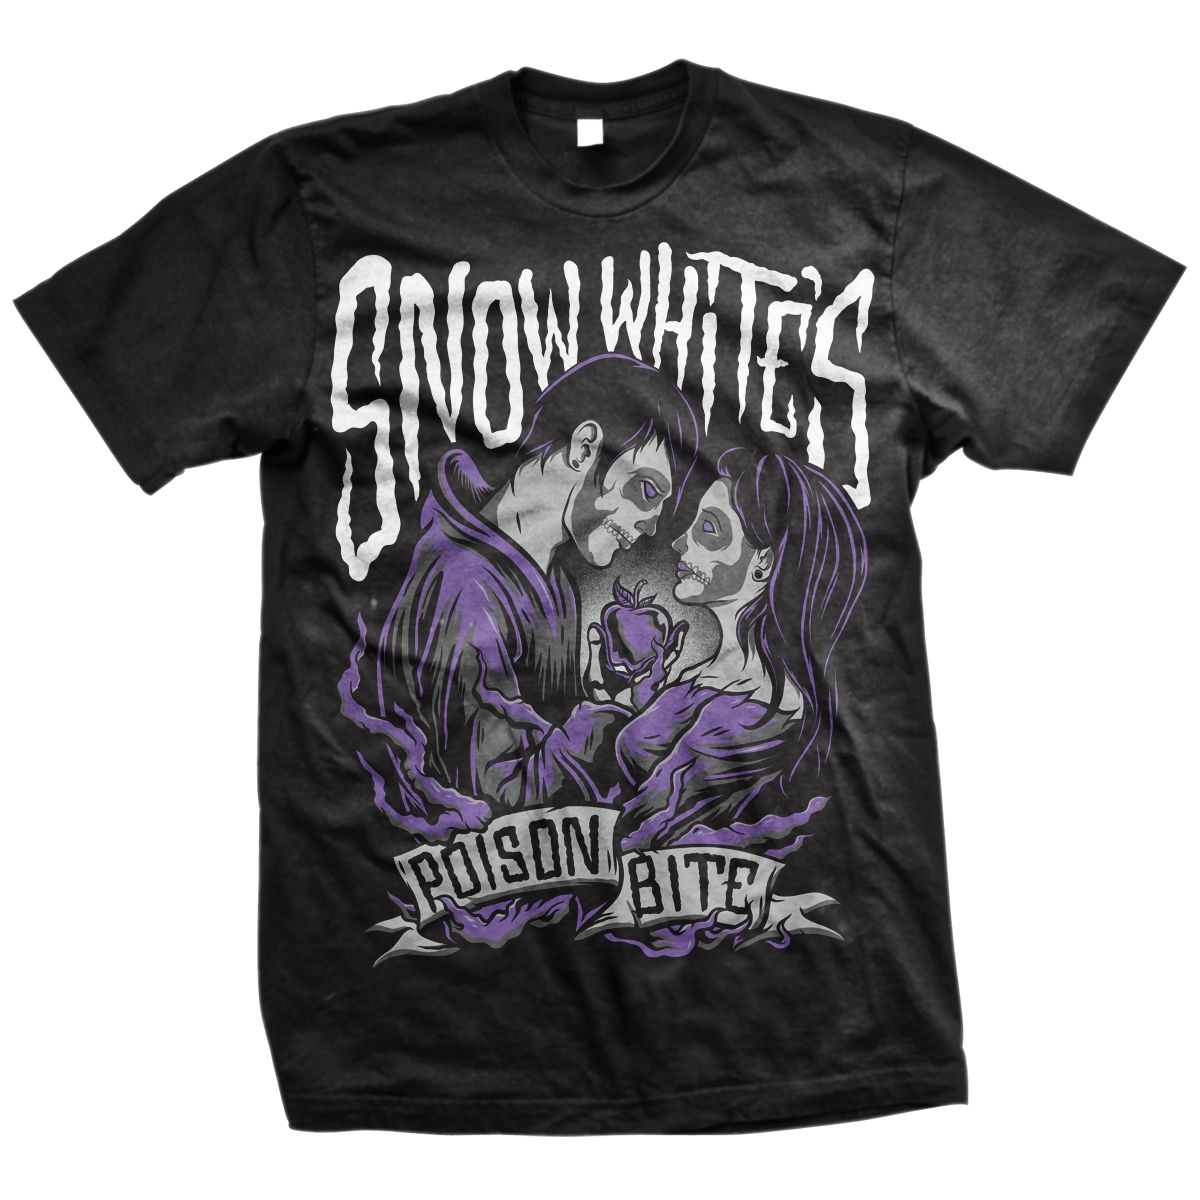 Snow White S Poison Bite Zombie Romance 12 98 Shirts